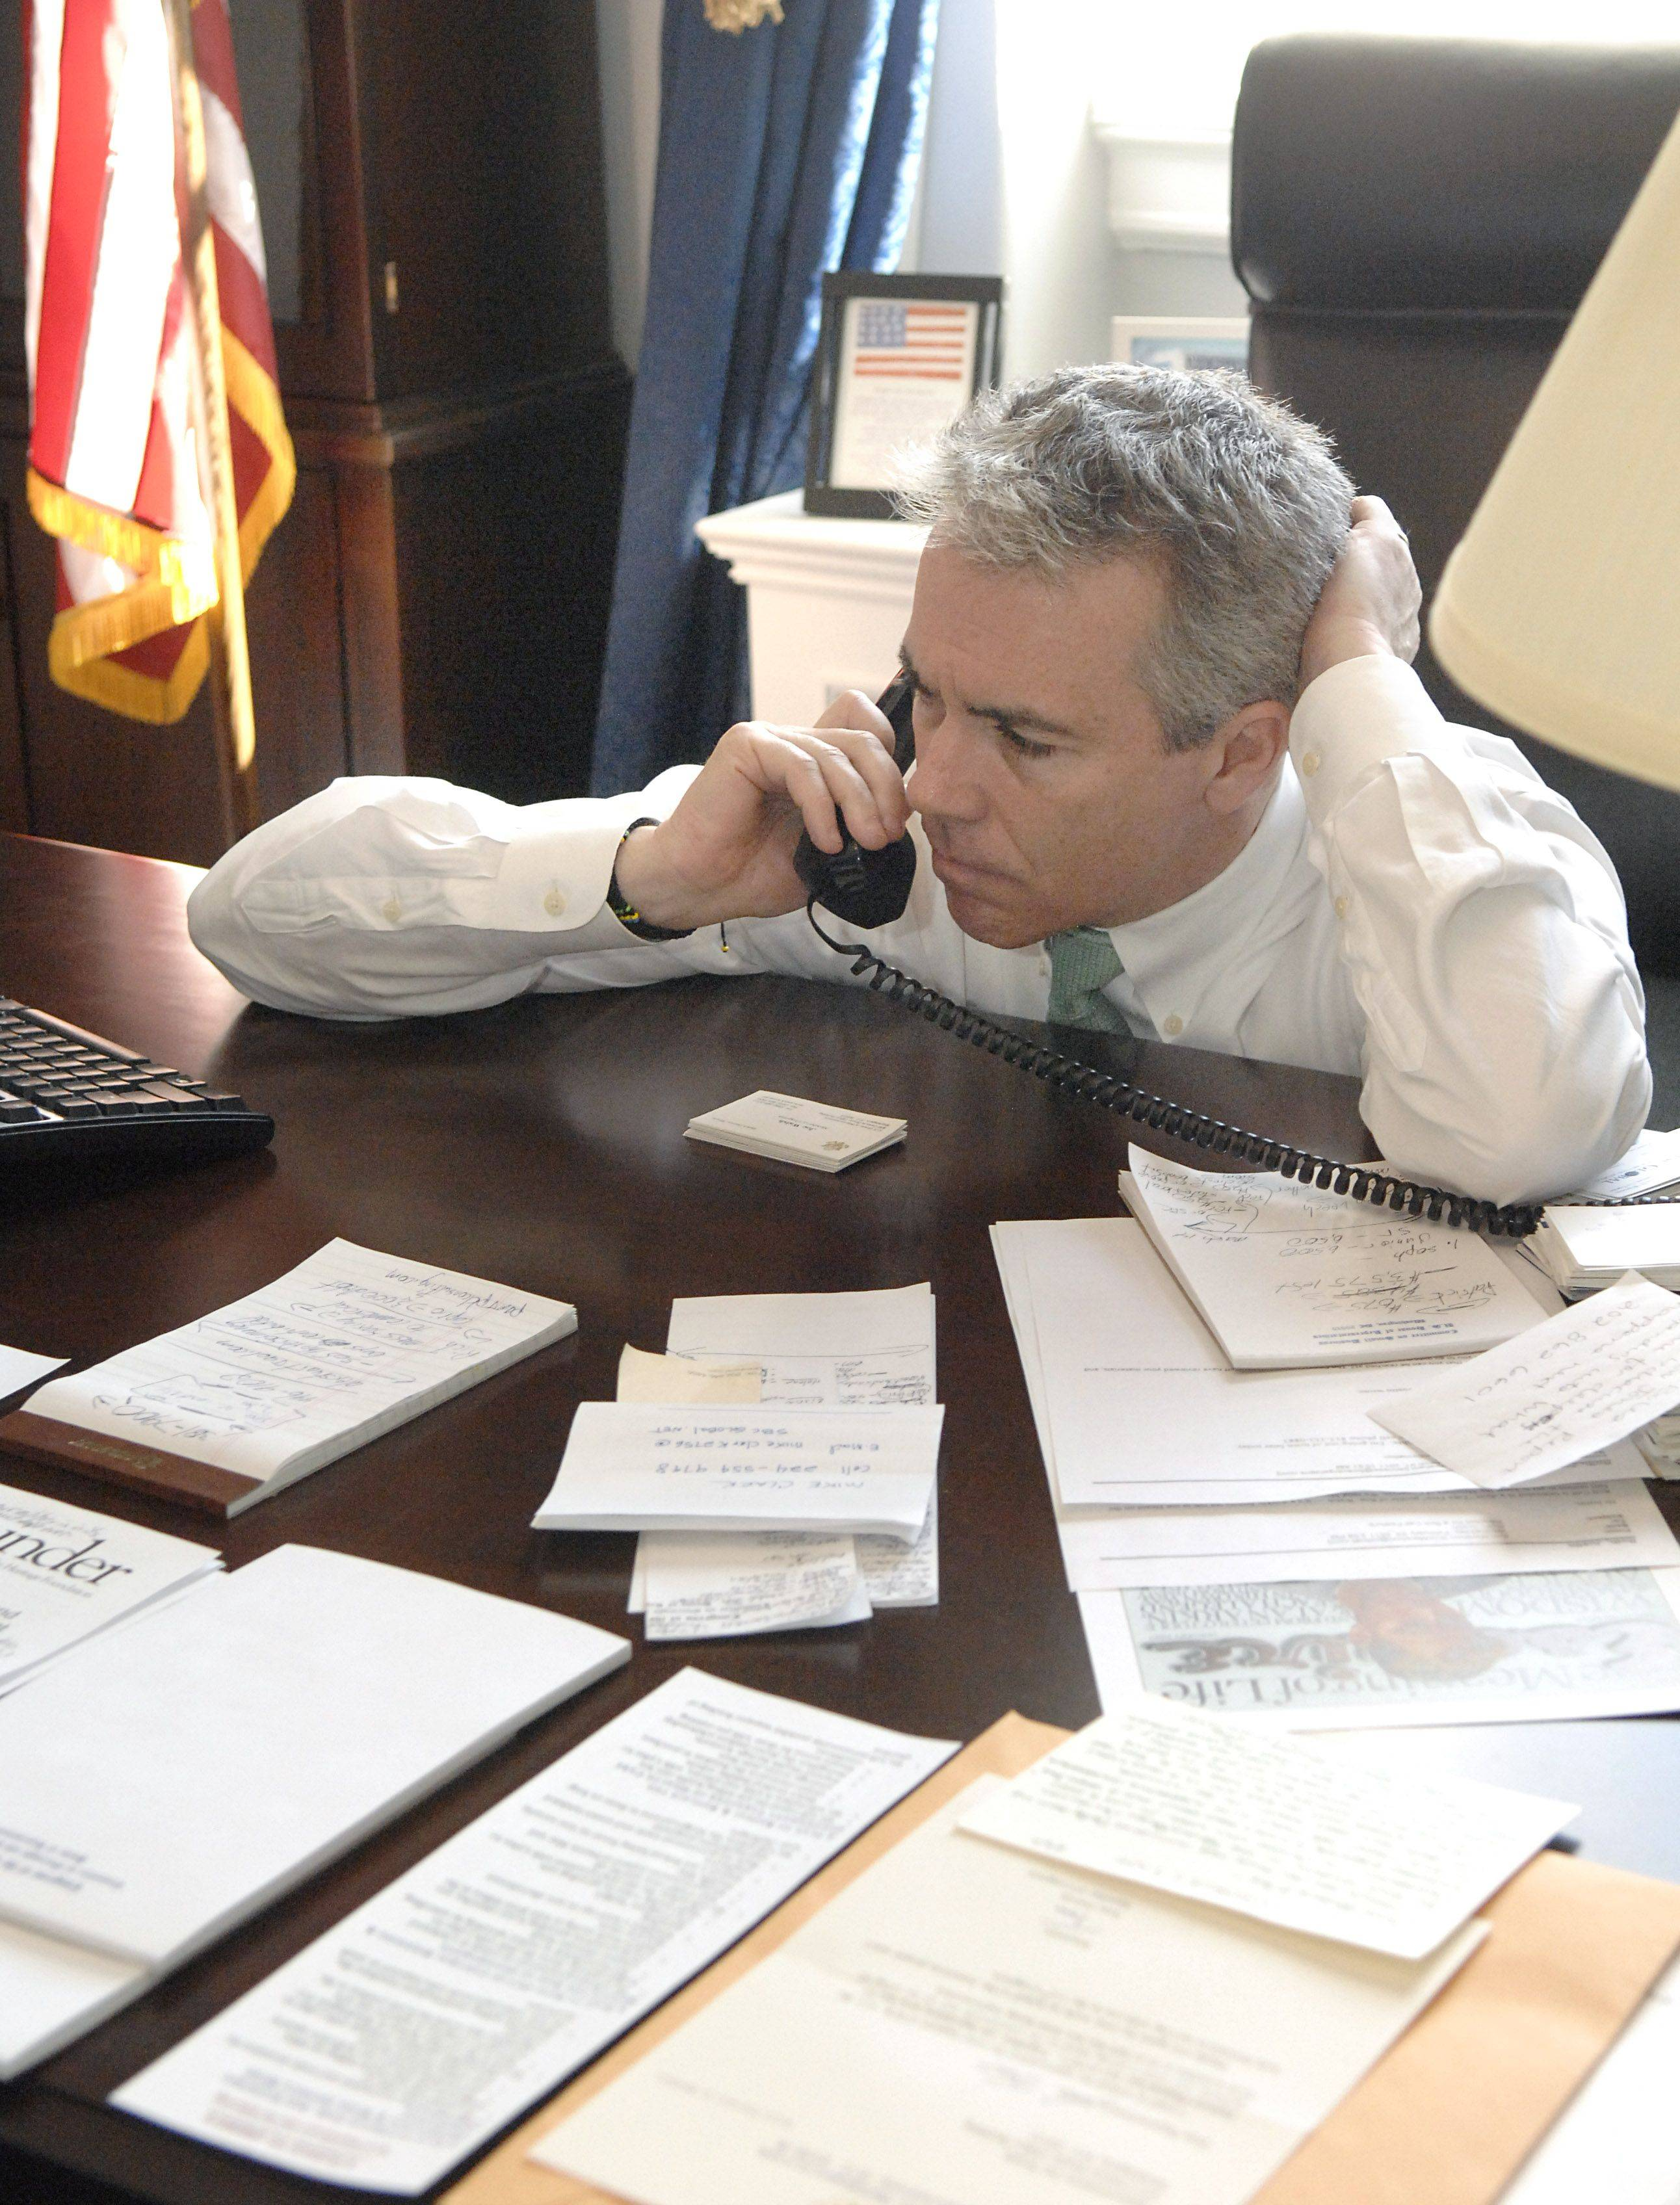 8th District Rep. Joe Walsh, of McHenry, takes a phone call inbetween meetings in his Cannon House office in Washington D.C.